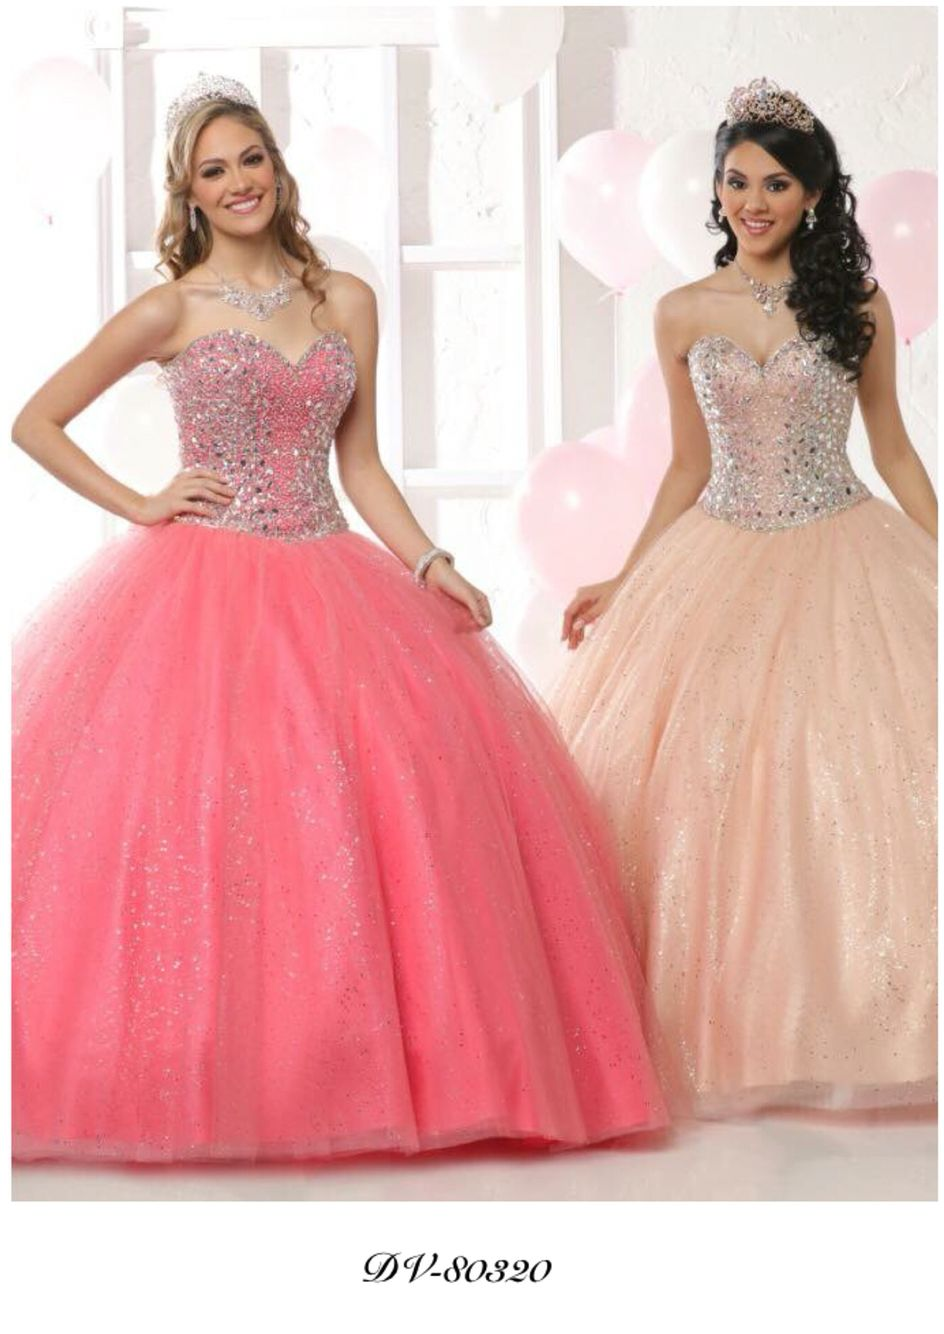 2016 Quinceaera Gowns Available At Evas Designs Bridal